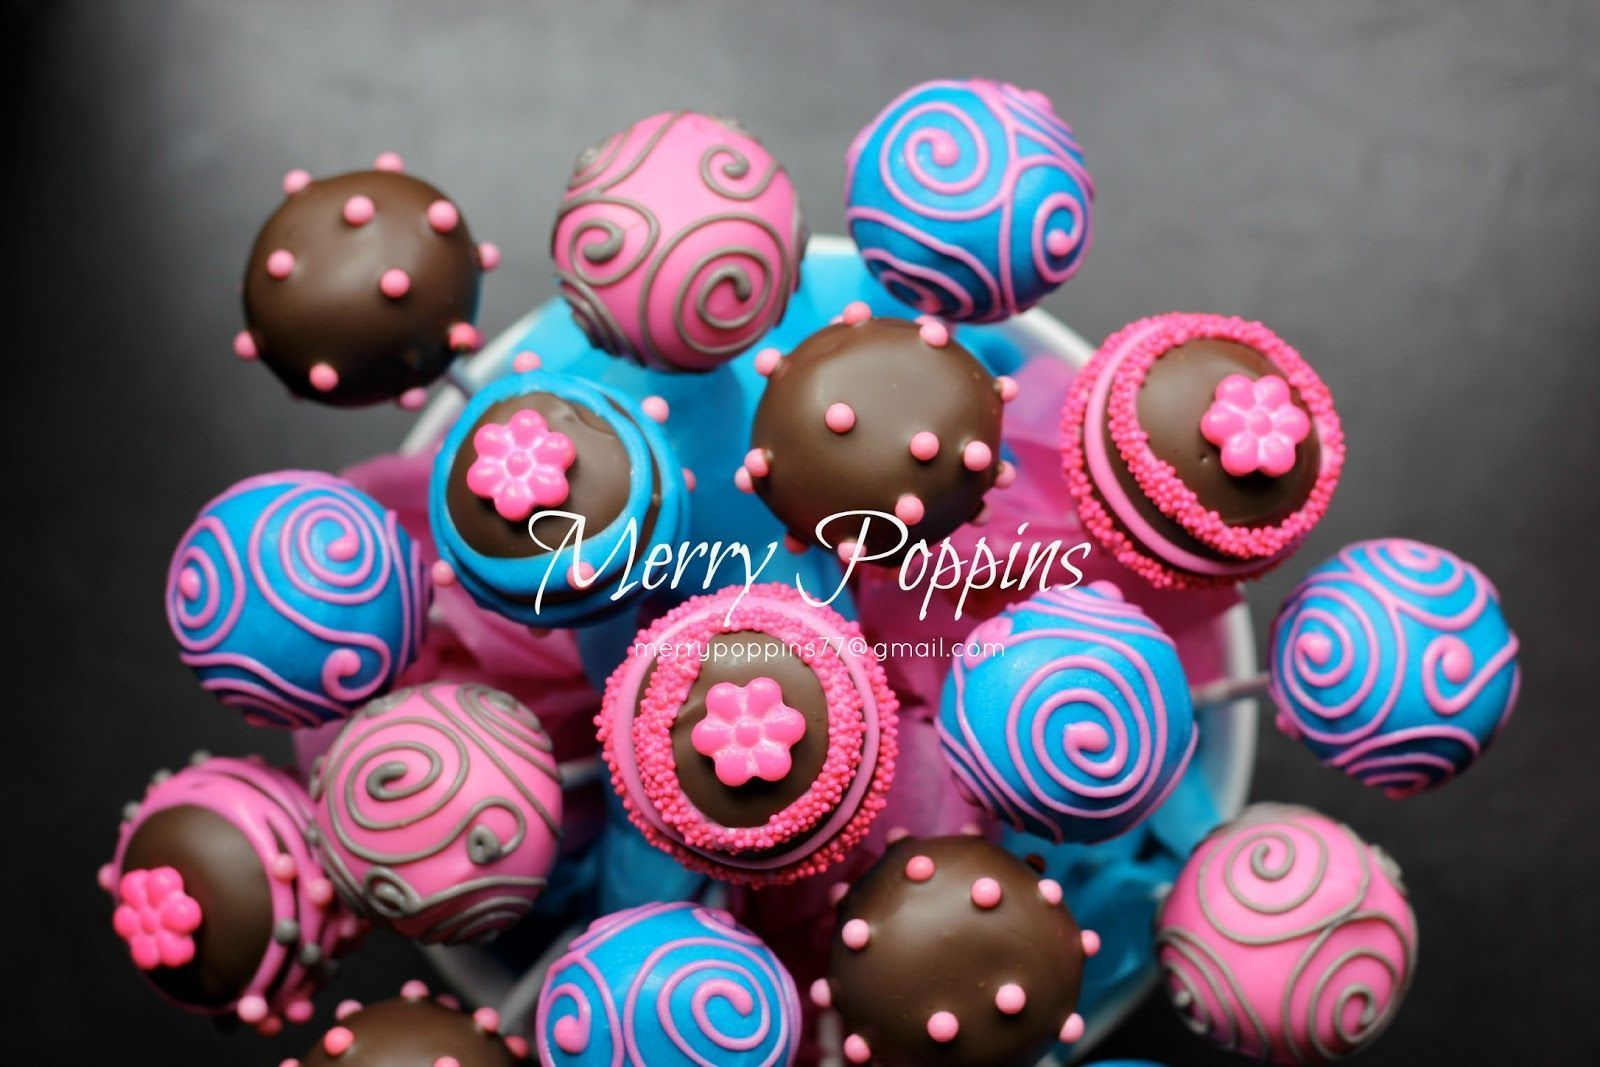 In love with pink and turquoise! Birthday cake pop Bouquet. Merry Poppins Sweet Treats. #cakepopbouquet In love with pink and turquoise! Birthday cake pop Bouquet. Merry Poppins Sweet Treats. #cakepopbouquet In love with pink and turquoise! Birthday cake pop Bouquet. Merry Poppins Sweet Treats. #cakepopbouquet In love with pink and turquoise! Birthday cake pop Bouquet. Merry Poppins Sweet Treats. #cakepopbouquet